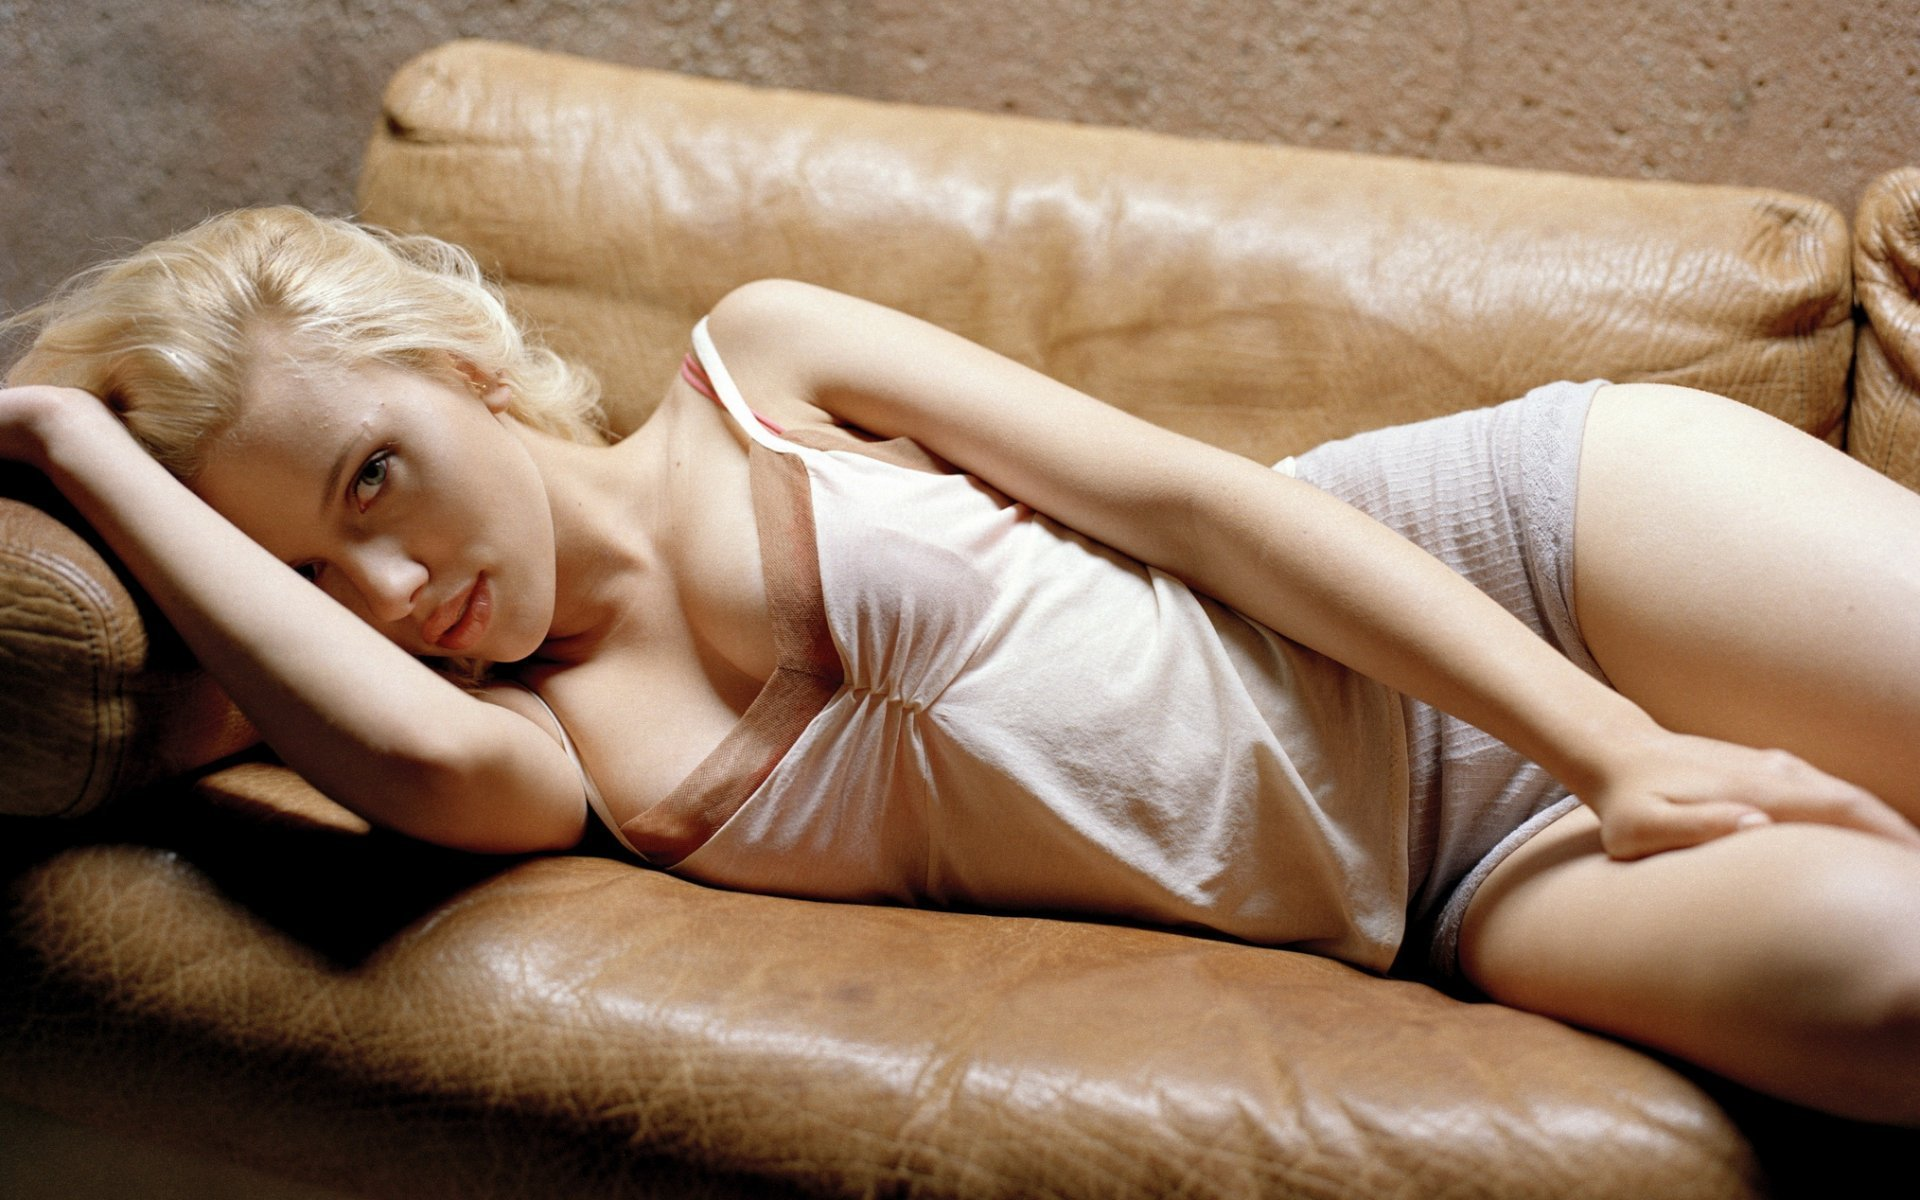 scarlett johansson hot hd - photo #1